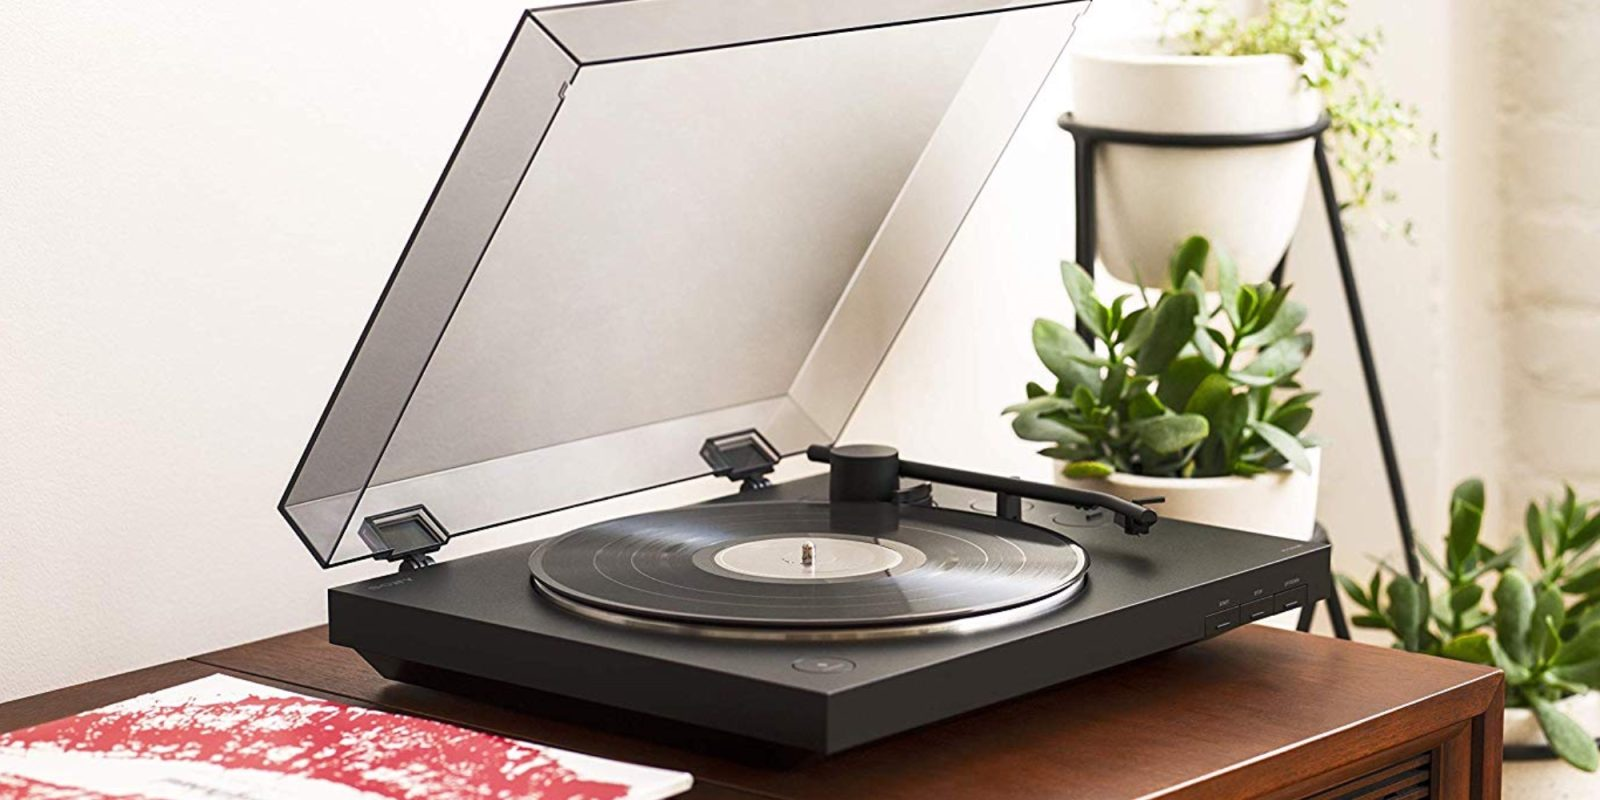 Kick it old school with 26% off Sony's Belt Drive Bluetooth Turntable at $148